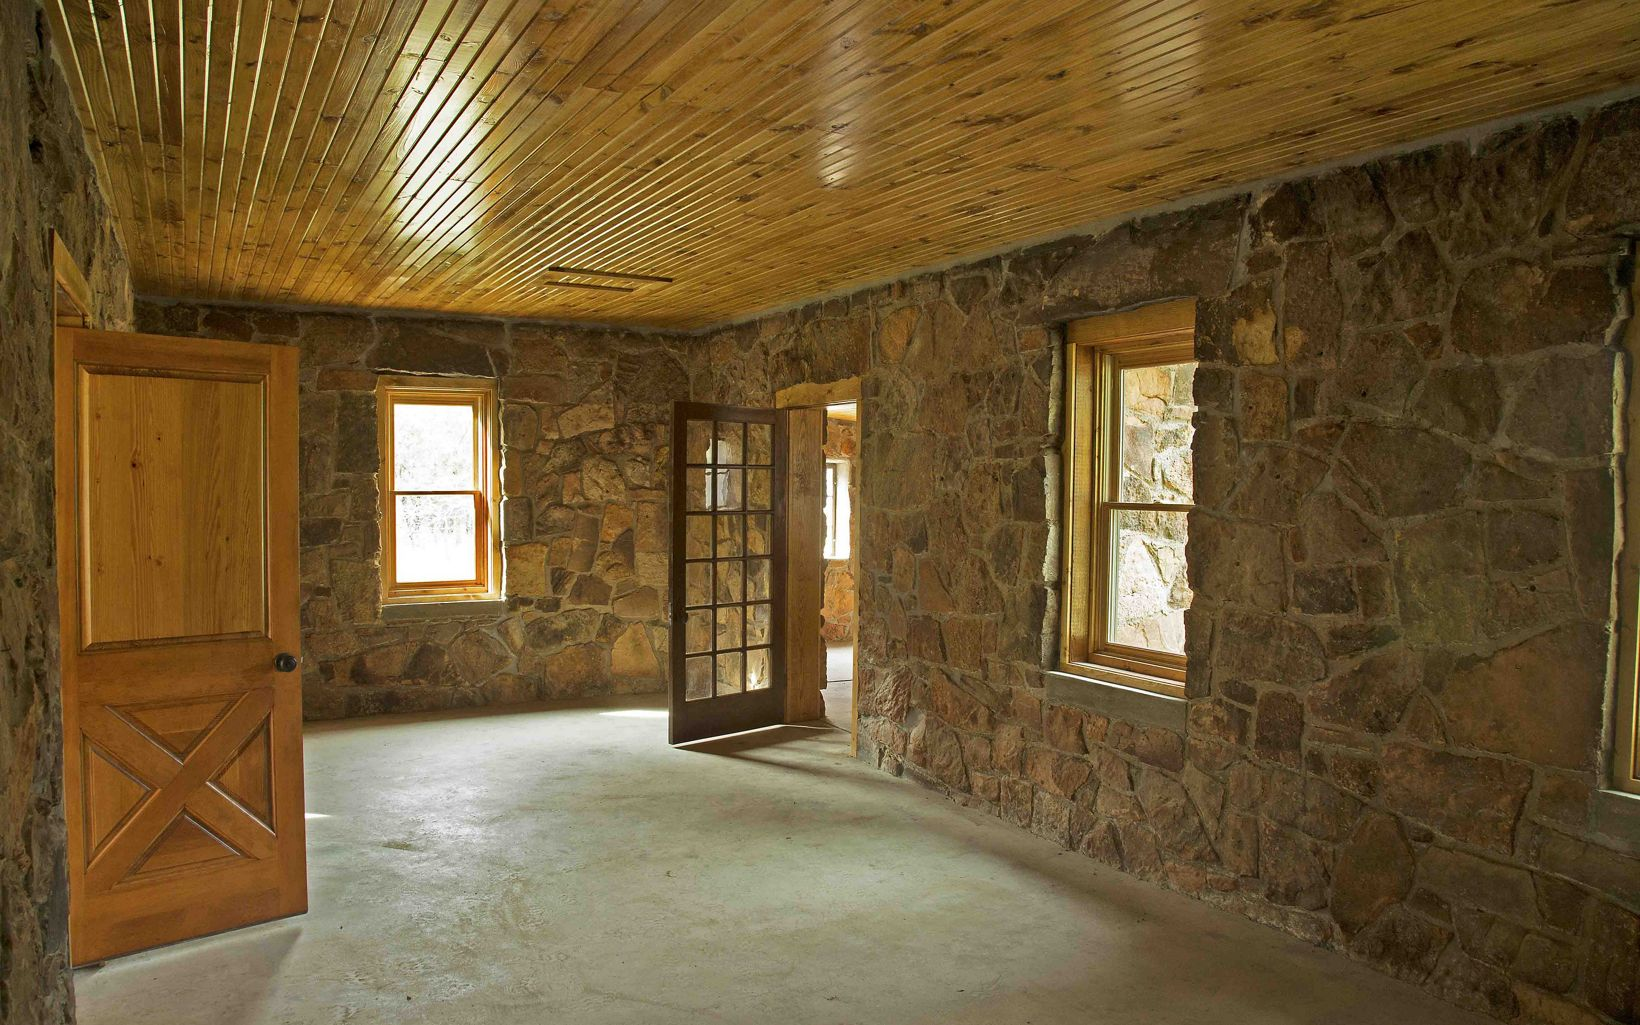 A look into history of the famed author, John Joseph Mathews, and his cabin now located on the Joseph H. Williams Tallgrass Prairie Preserve.